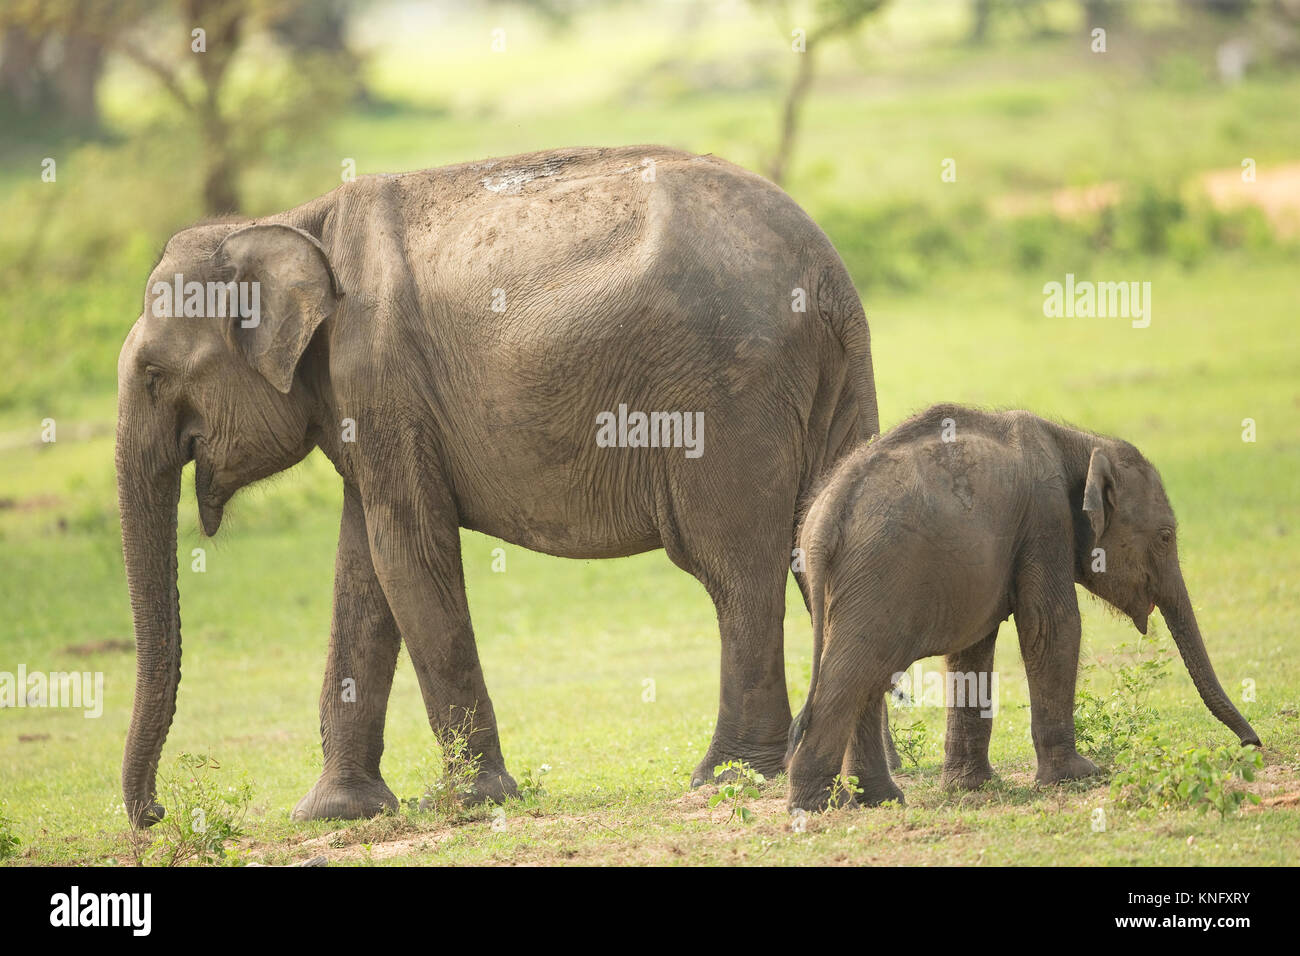 Sri Lanka (Asie) Éléphant (Elephas maximus maximus) Photo Stock